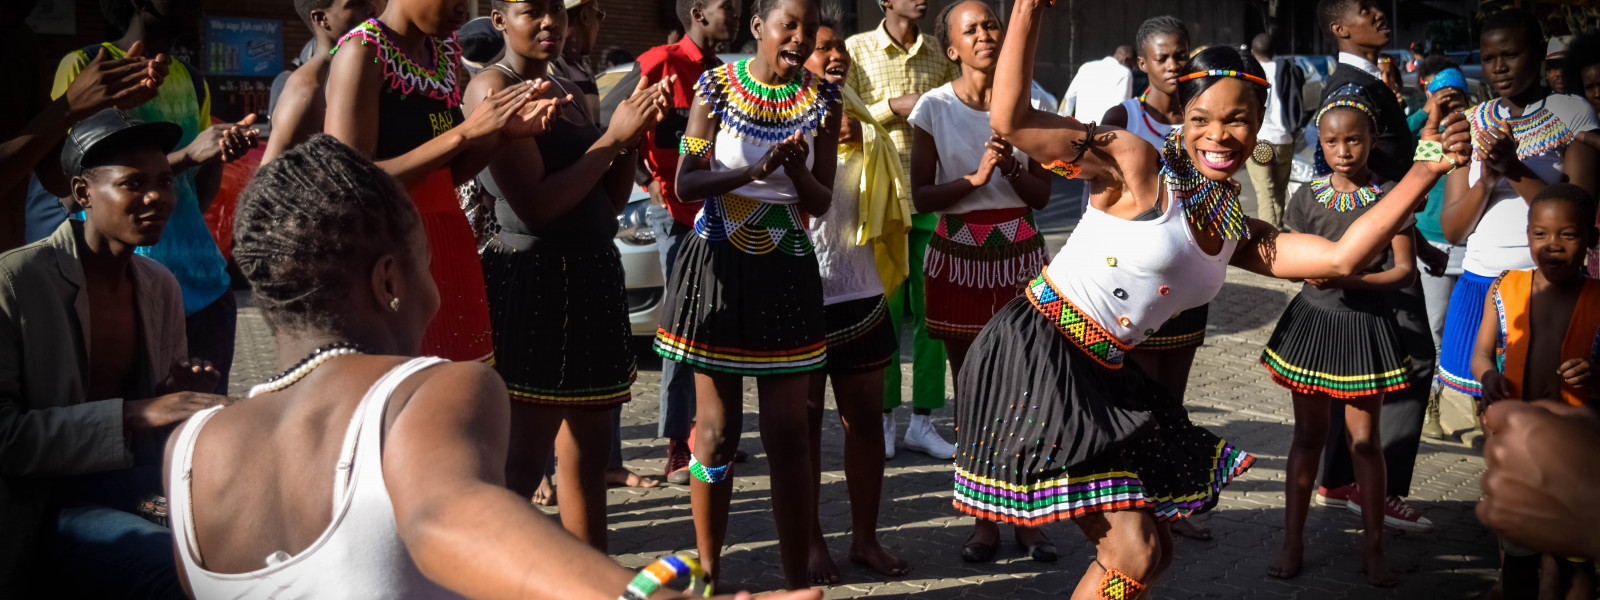 A youth dance troupe performs in Johannesburg, South Africa